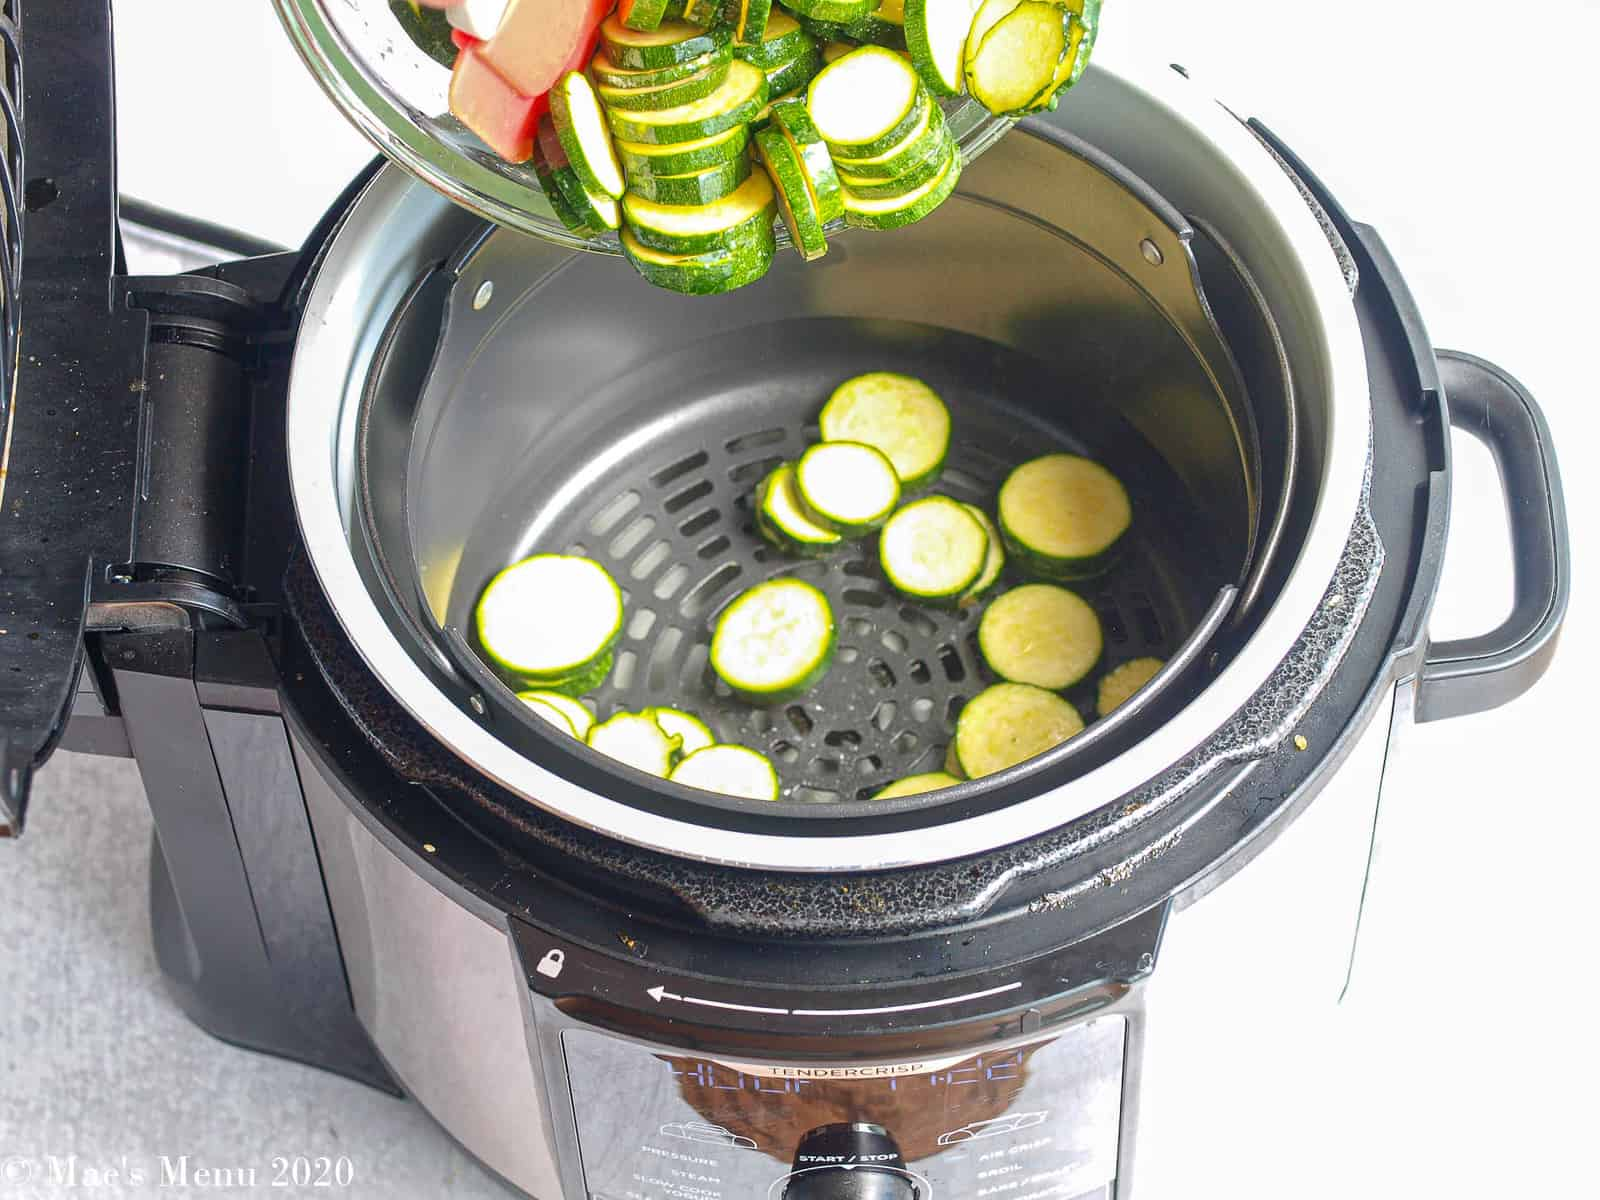 pouring zucchini slices into the basket of an air fryer